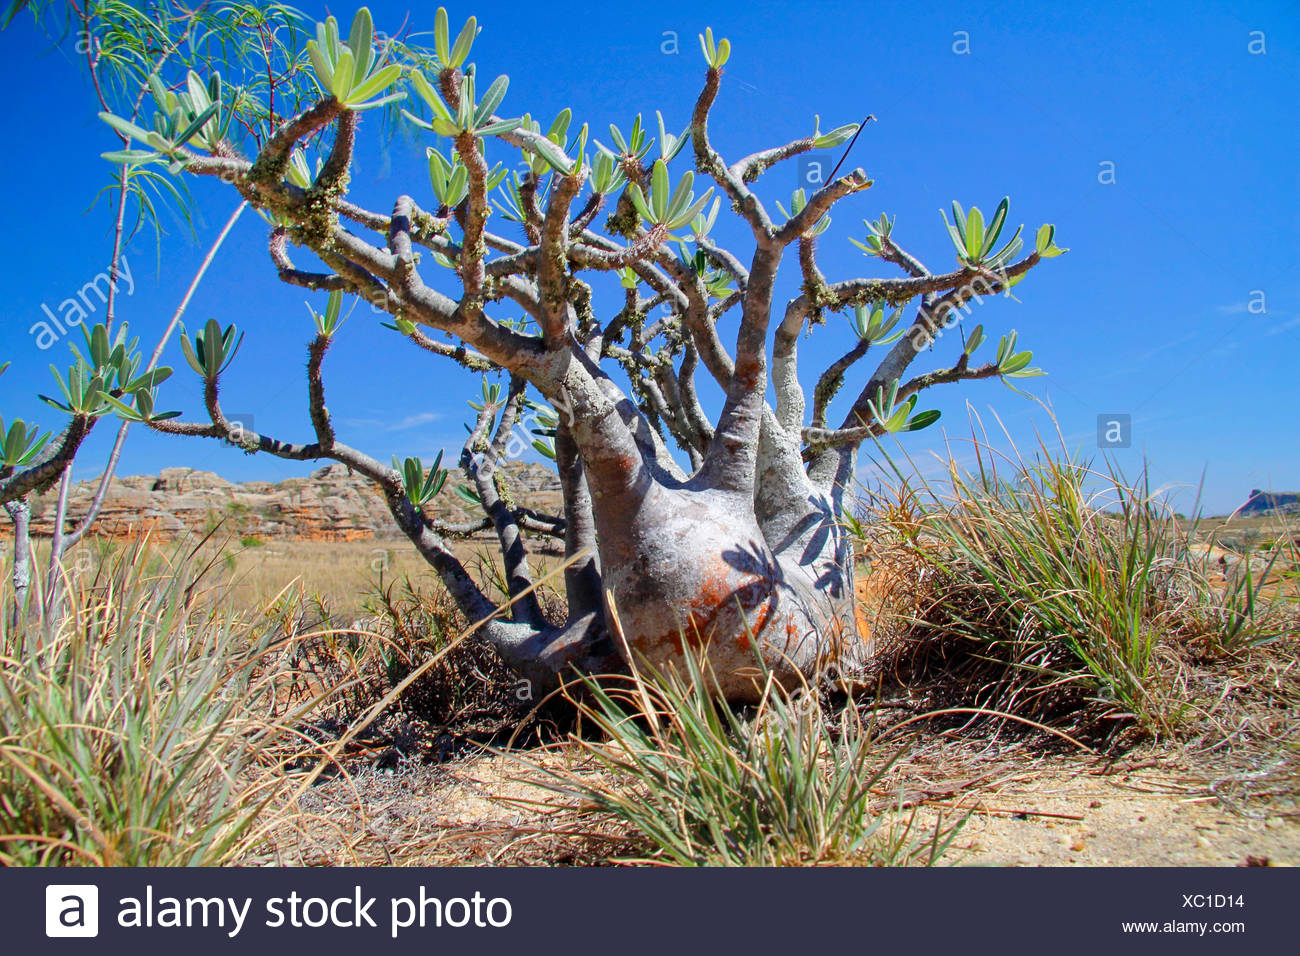 Elephant's Foot Plant  (Pachypodium rosulatum ), single plant in front of the the mountains, Madagascar, Isalo National Park - Stock Image